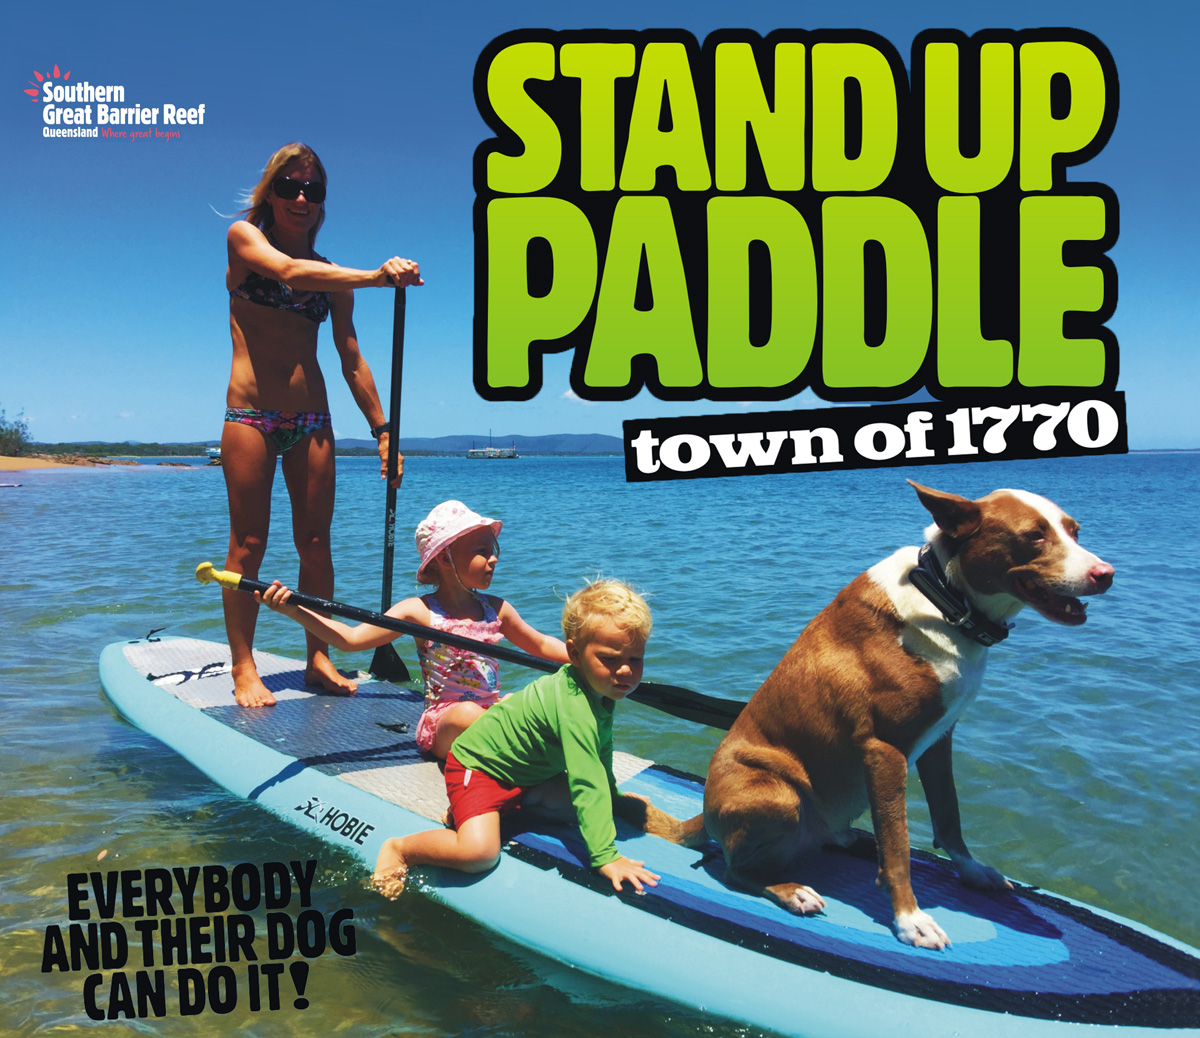 Town of 1770 Stand Up Paddle Hire - Everybody and their Dog can do it!